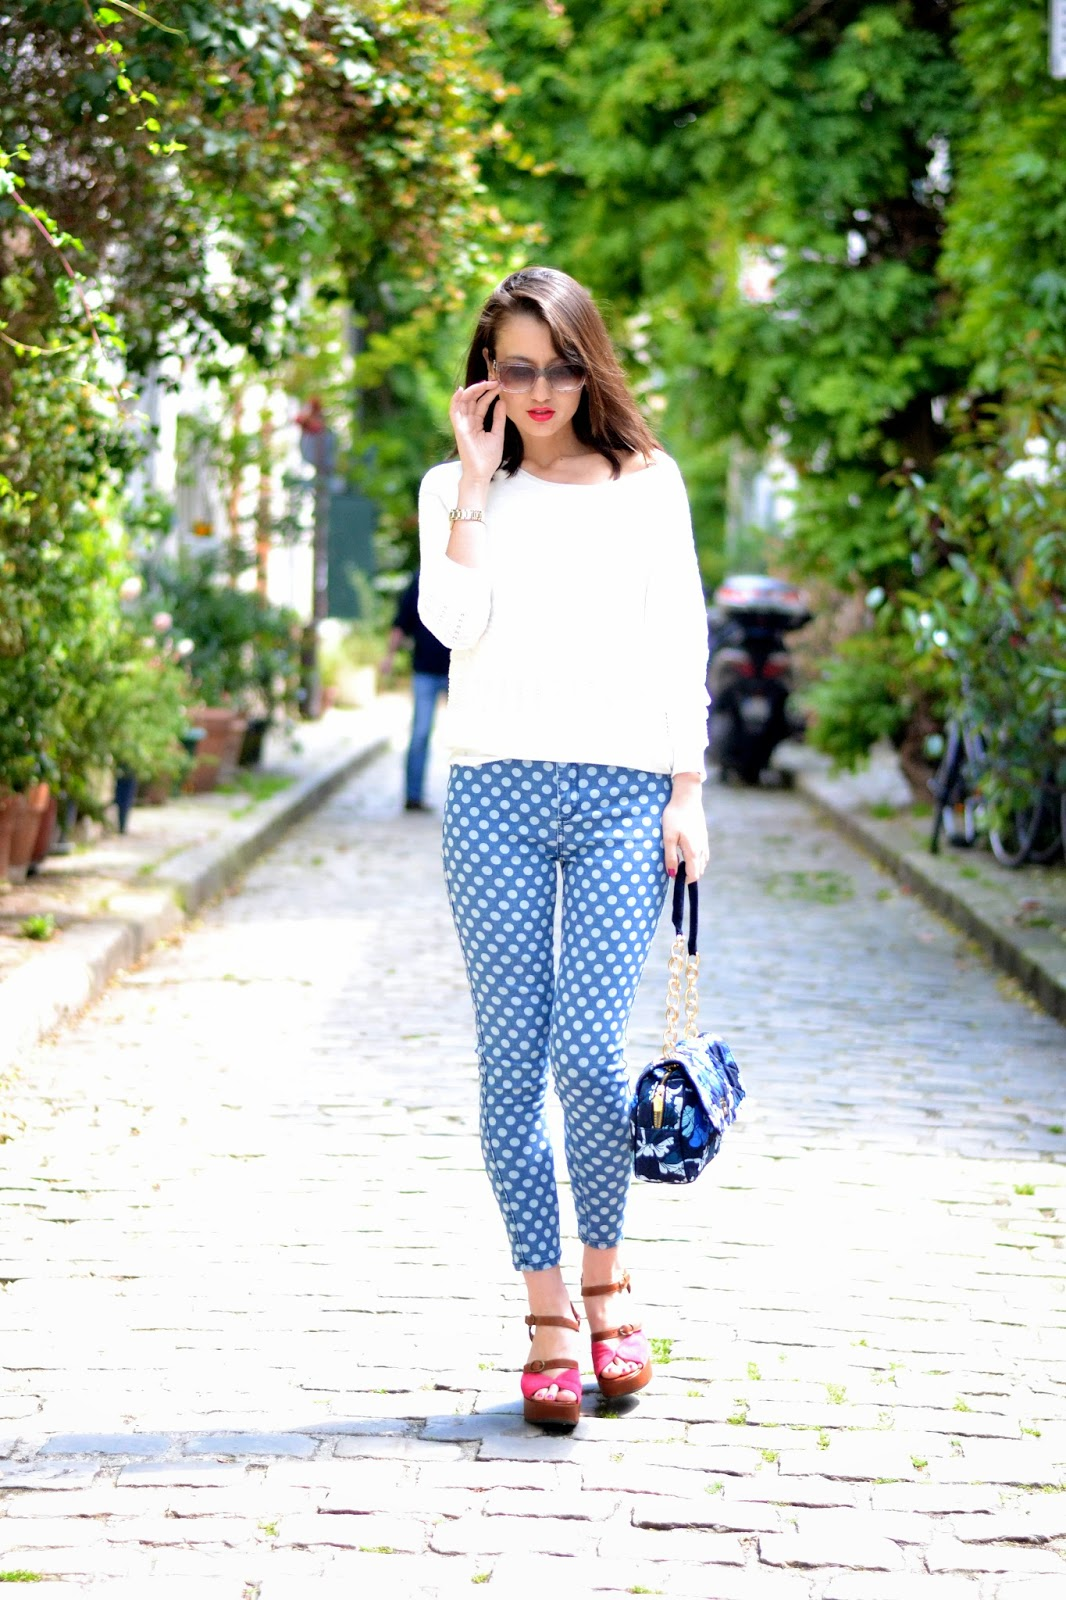 Fashion blogger Paris